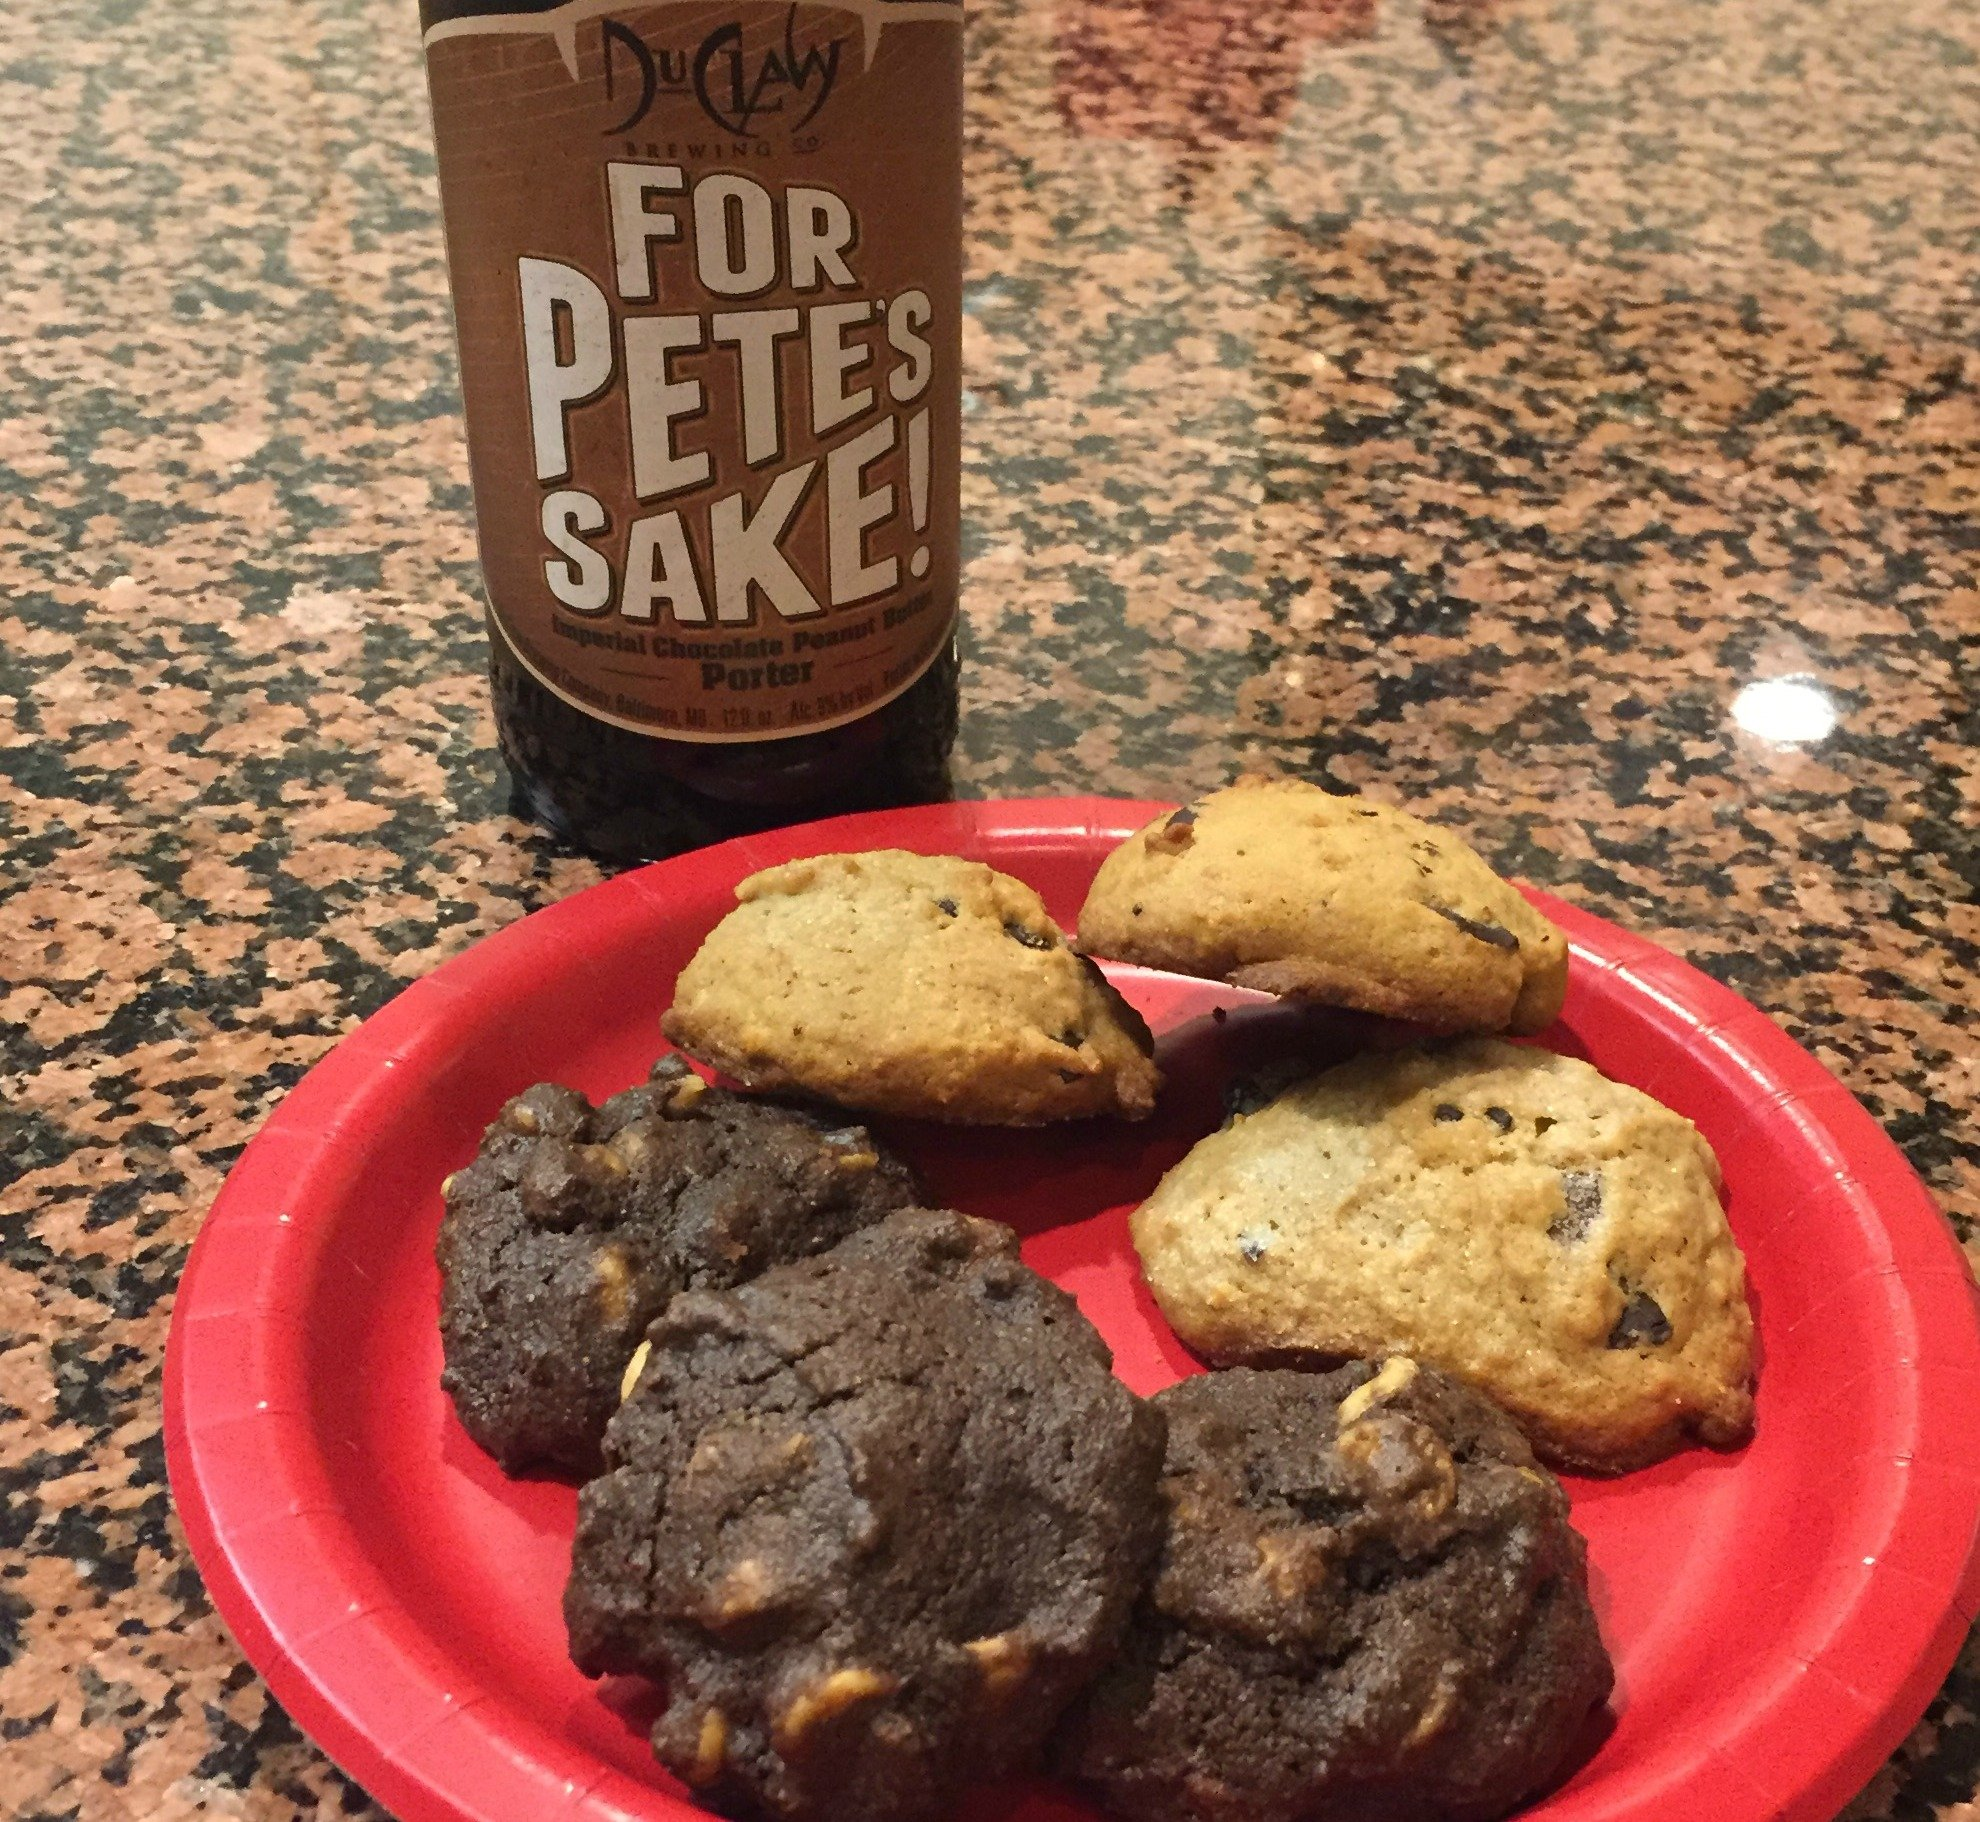 duclaw-for-petes-sake-cookies